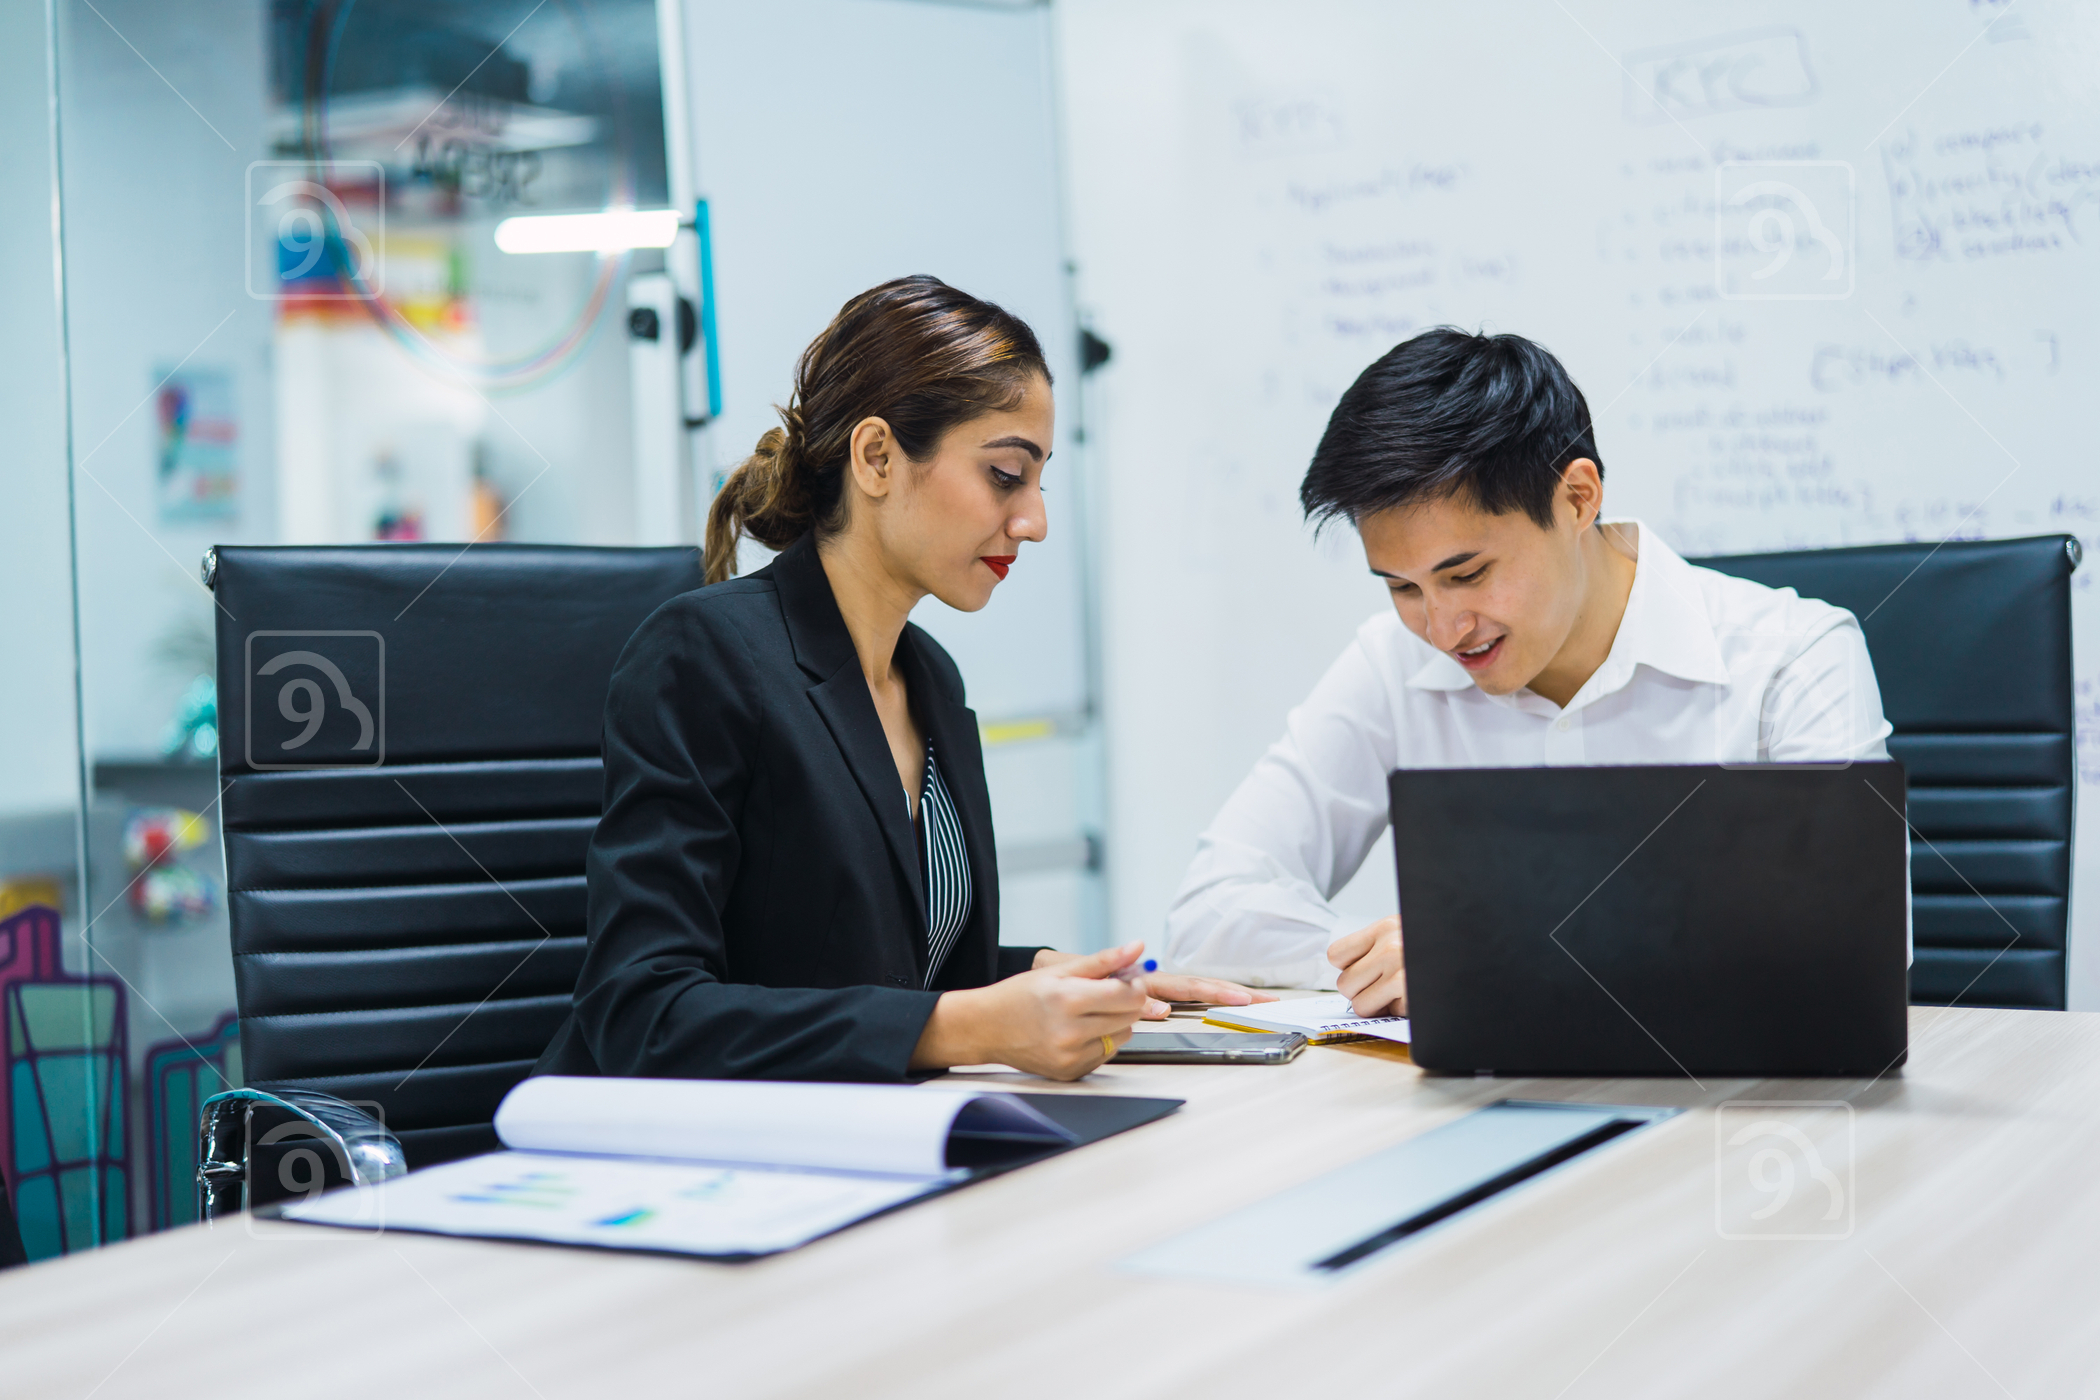 Asian coworkers meeting in a co-working space